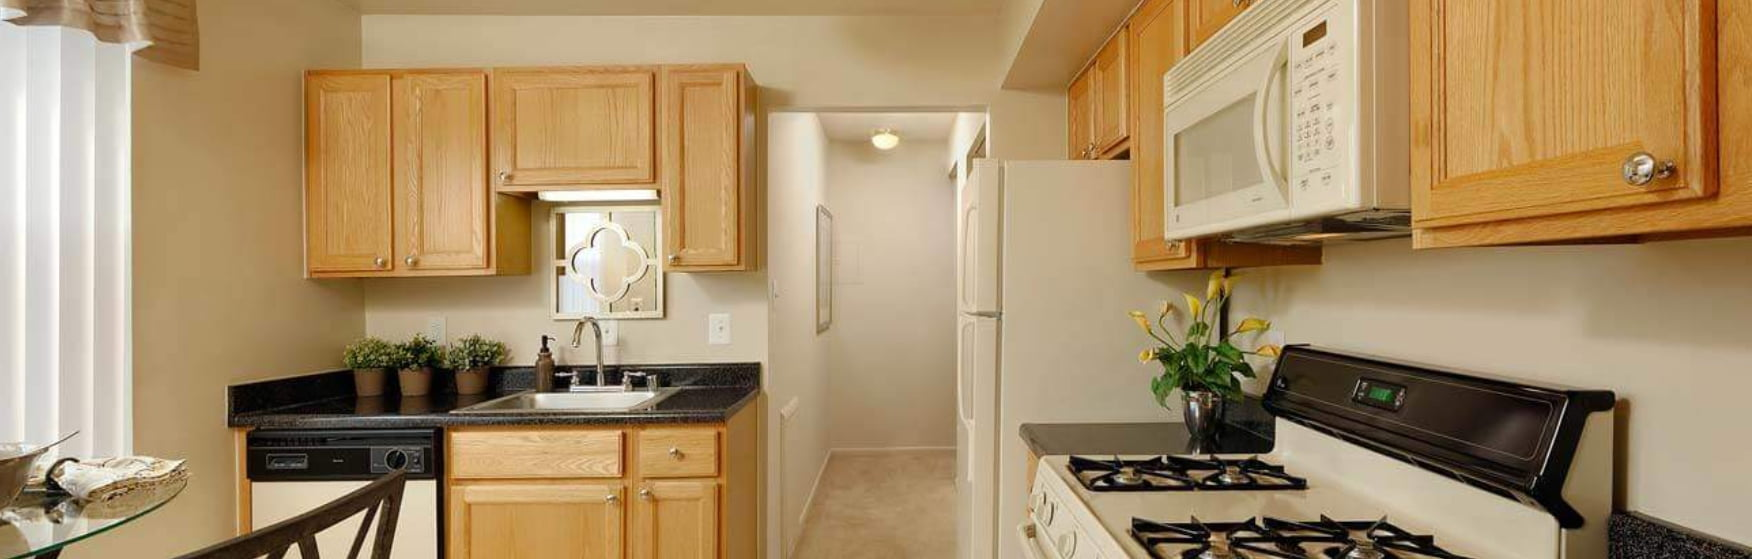 Brighton Village Apartments kitchen